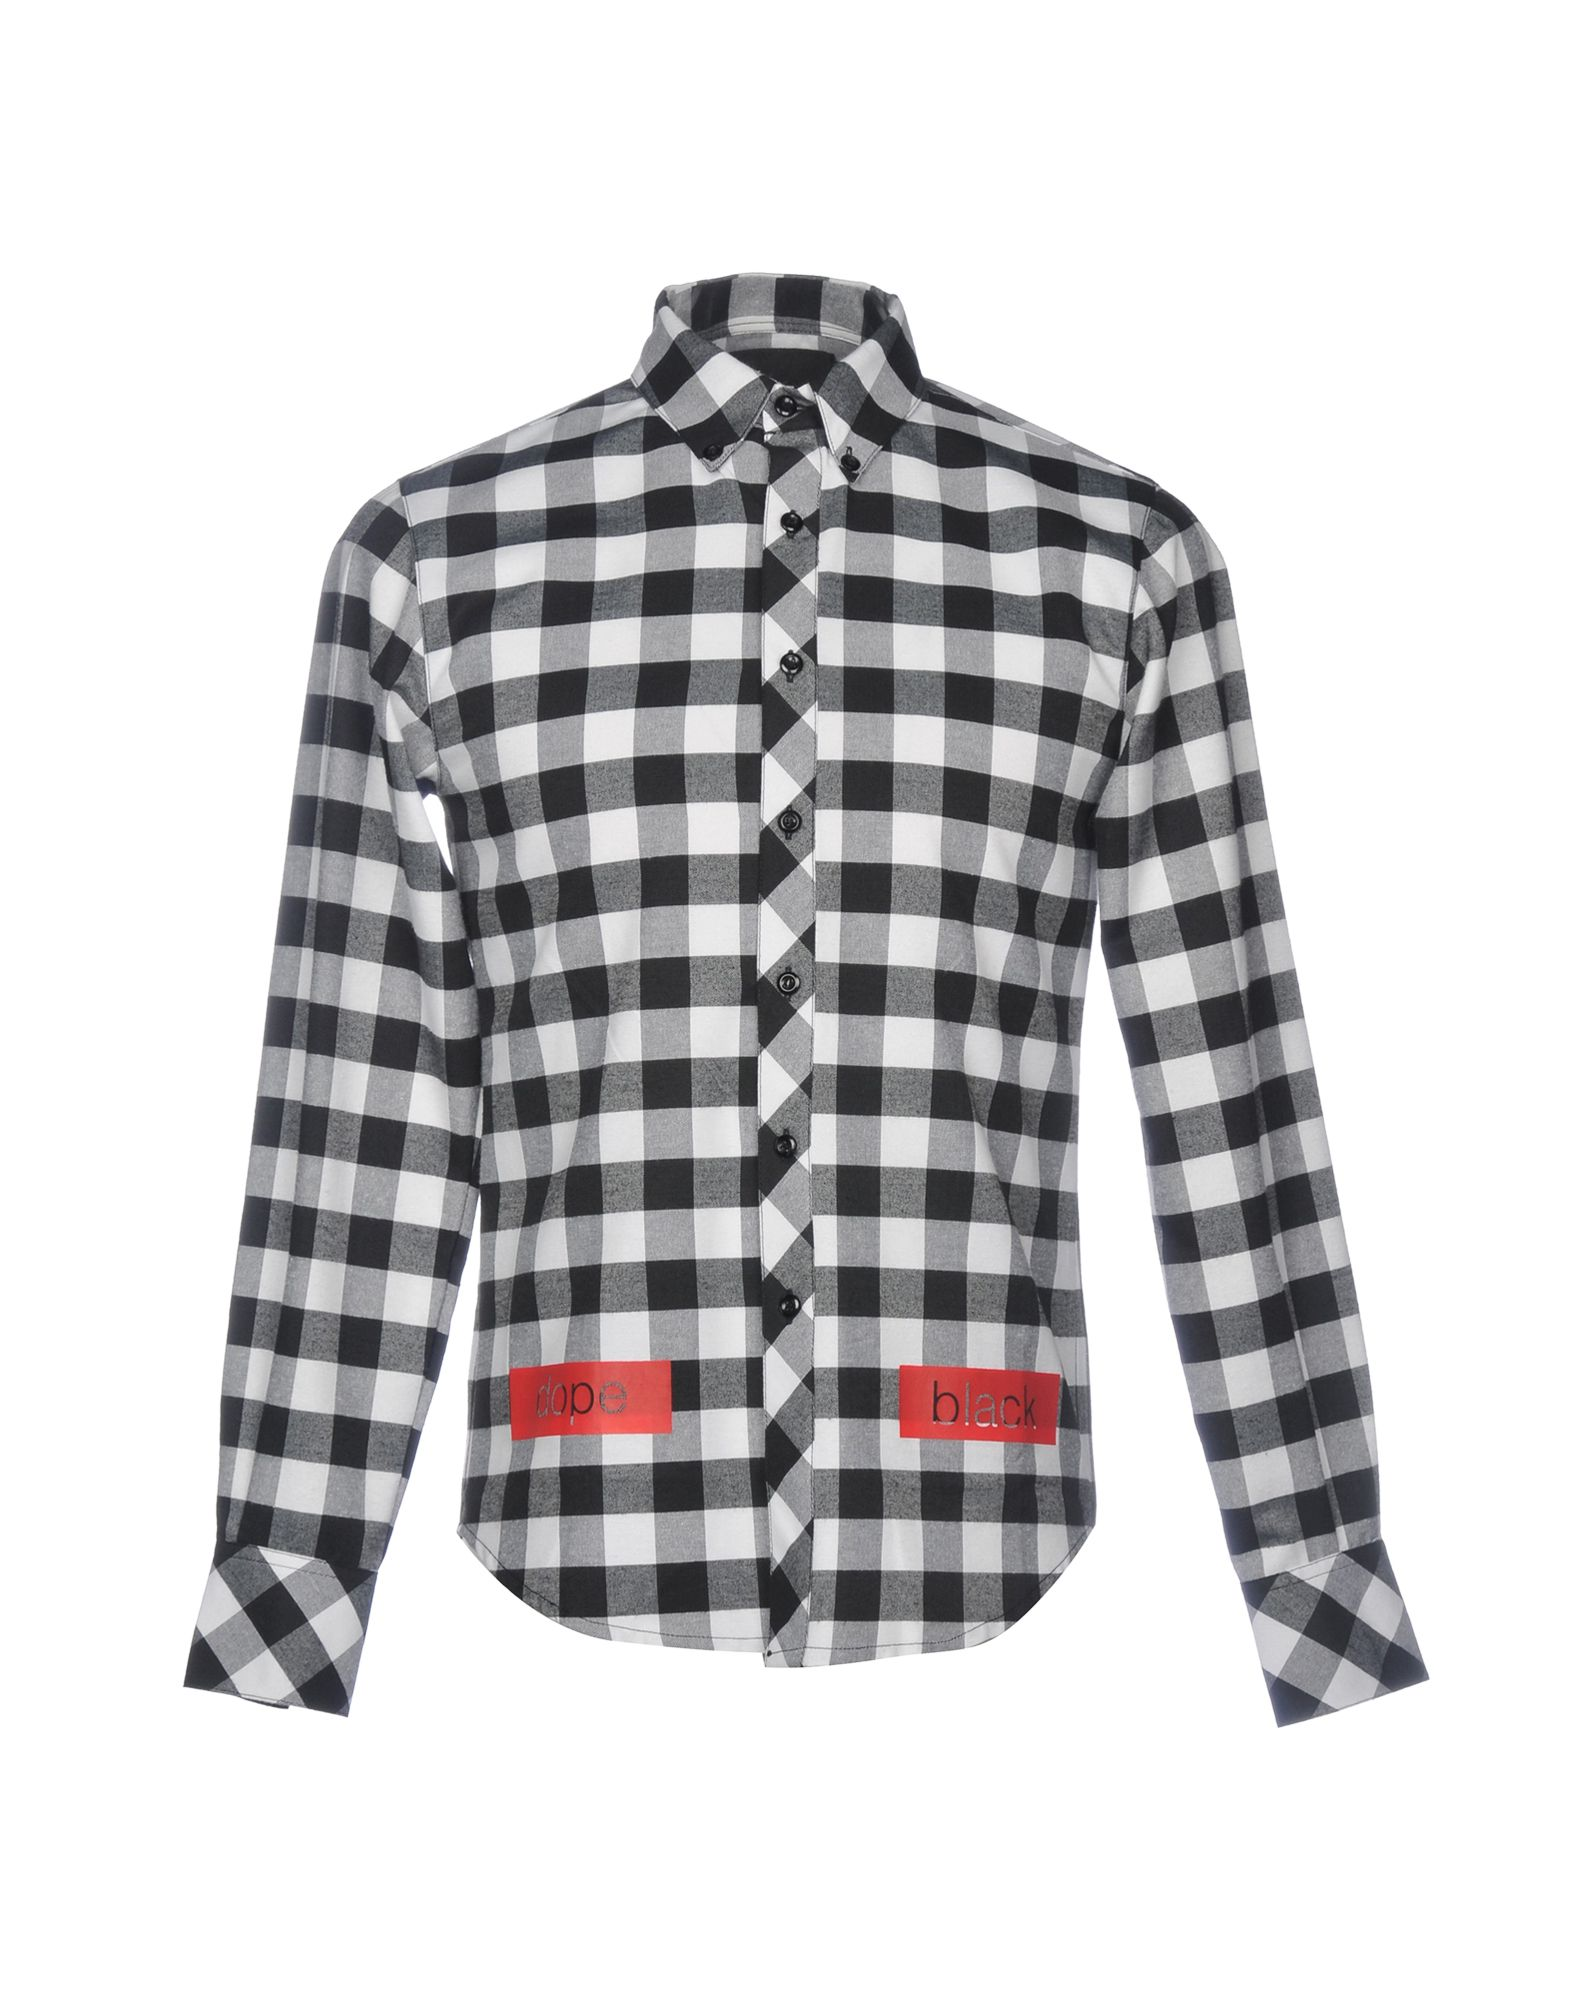 0cc1a81ee Where To Get Pyrex Plaid Shirt - Cotswold Hire